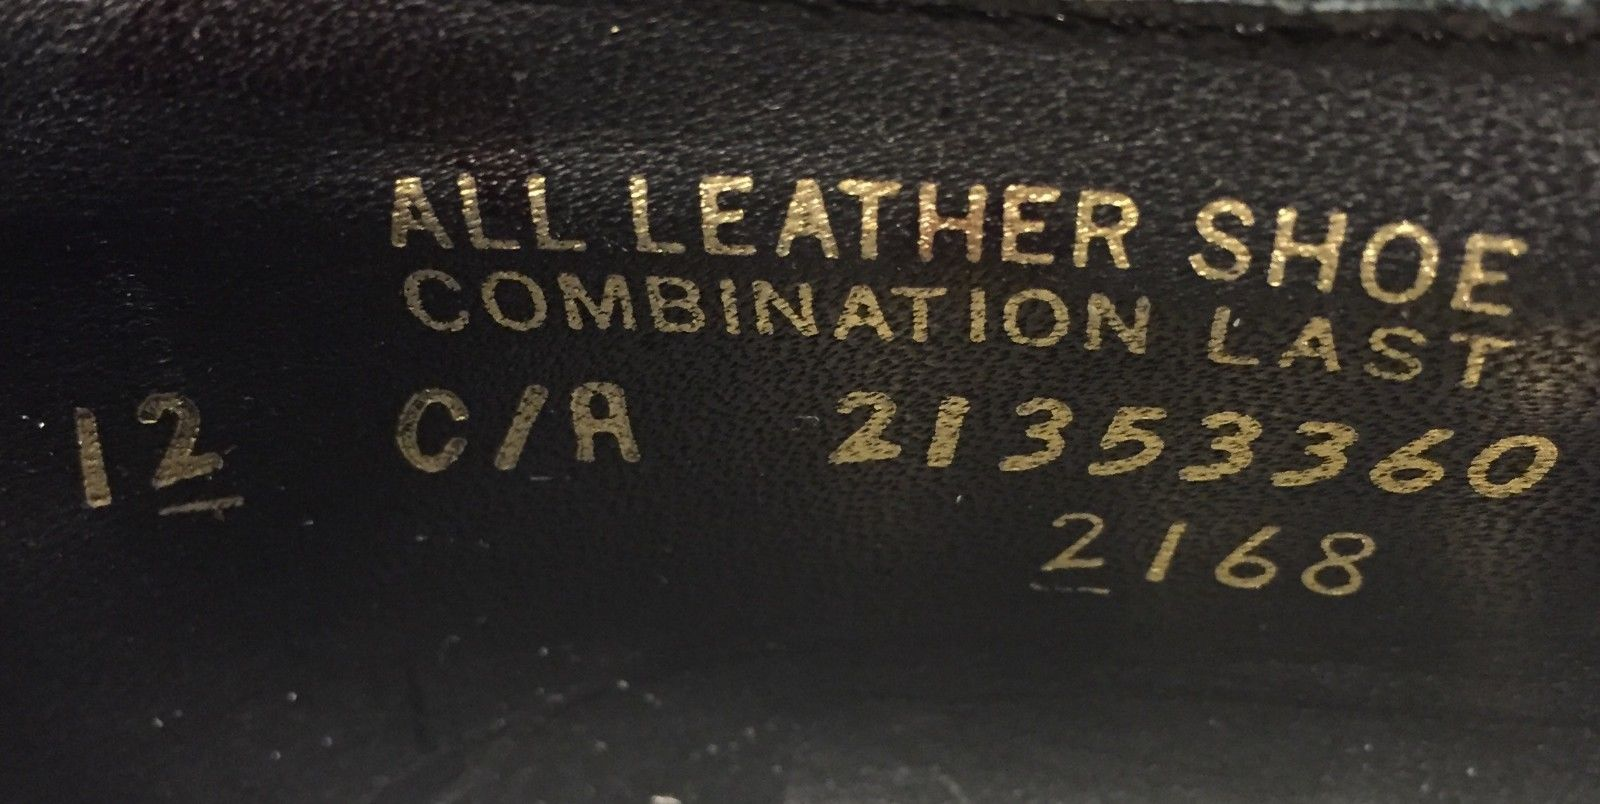 Hanover Shoe Model Number